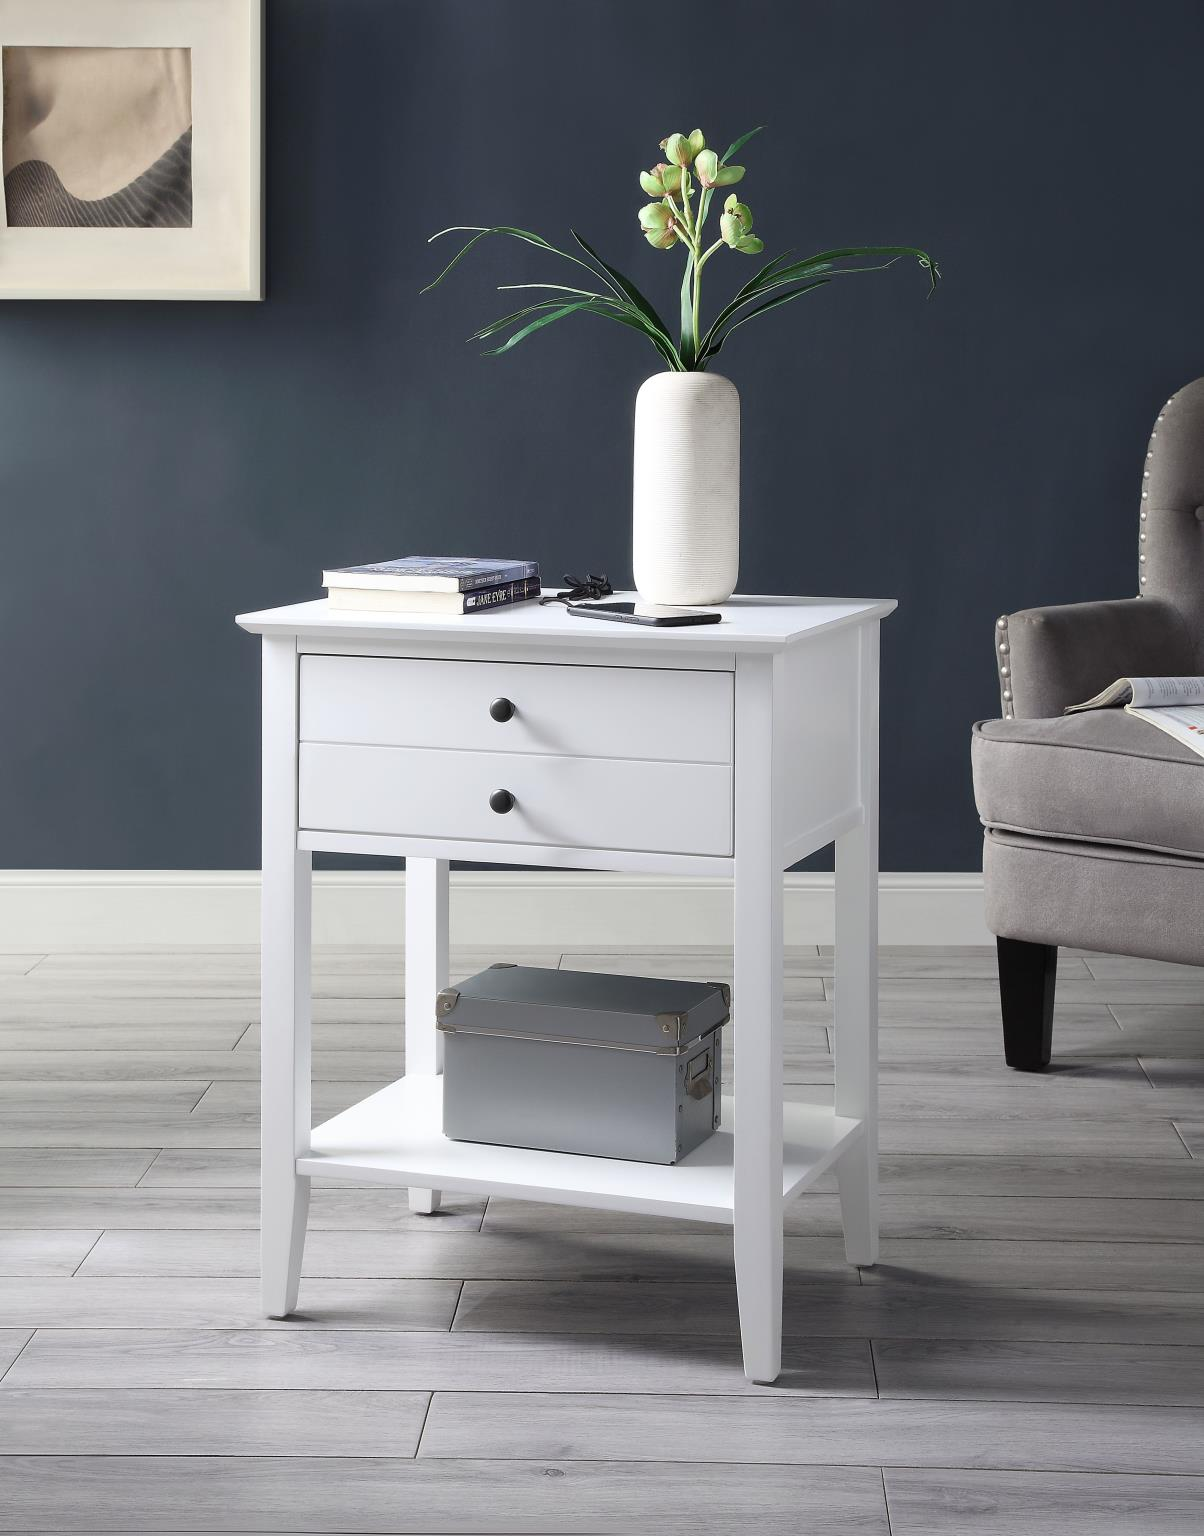 Shasta White Side Table w/ USB Dock - KTL Furniture